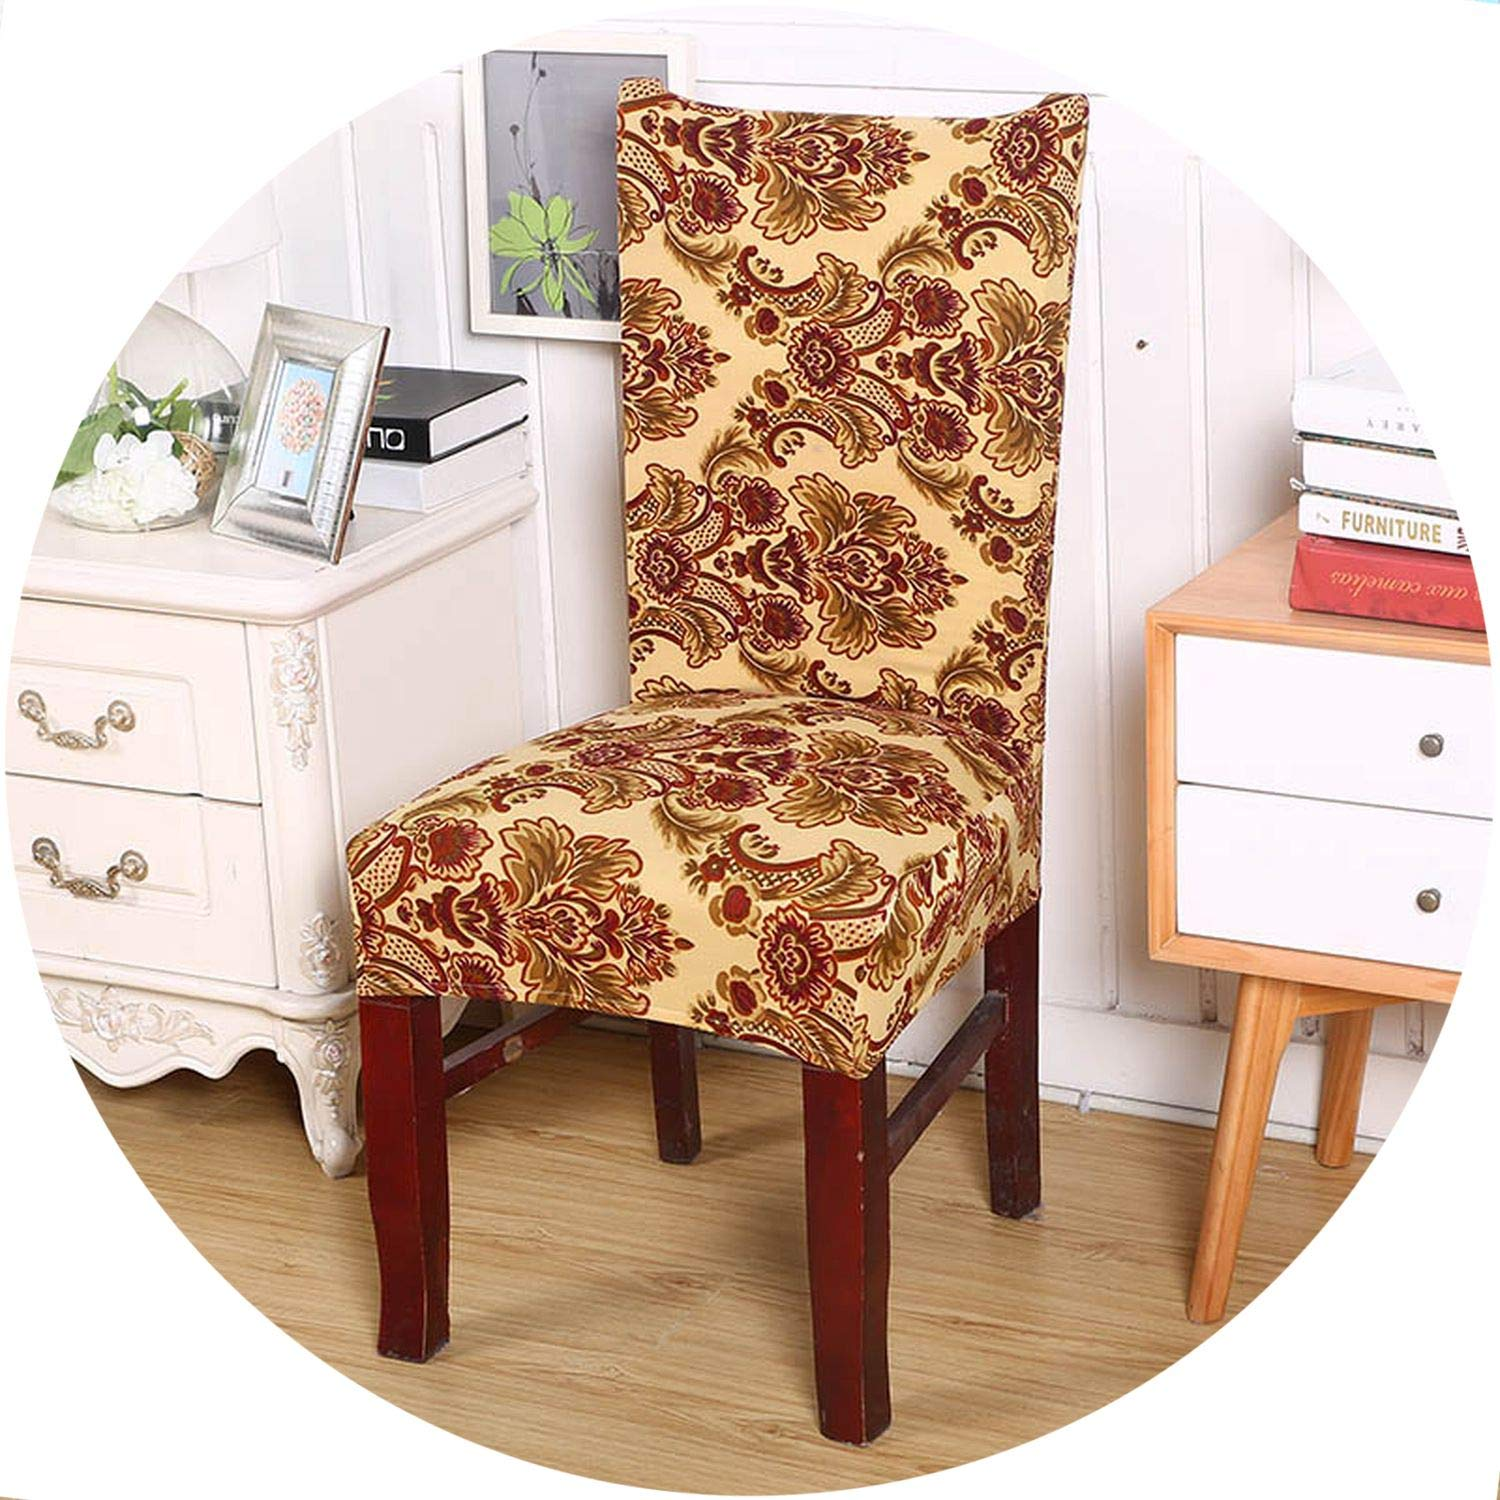 Amazon.com: better-caress 1/2/4/6 ces European Printing Chair Covers ...